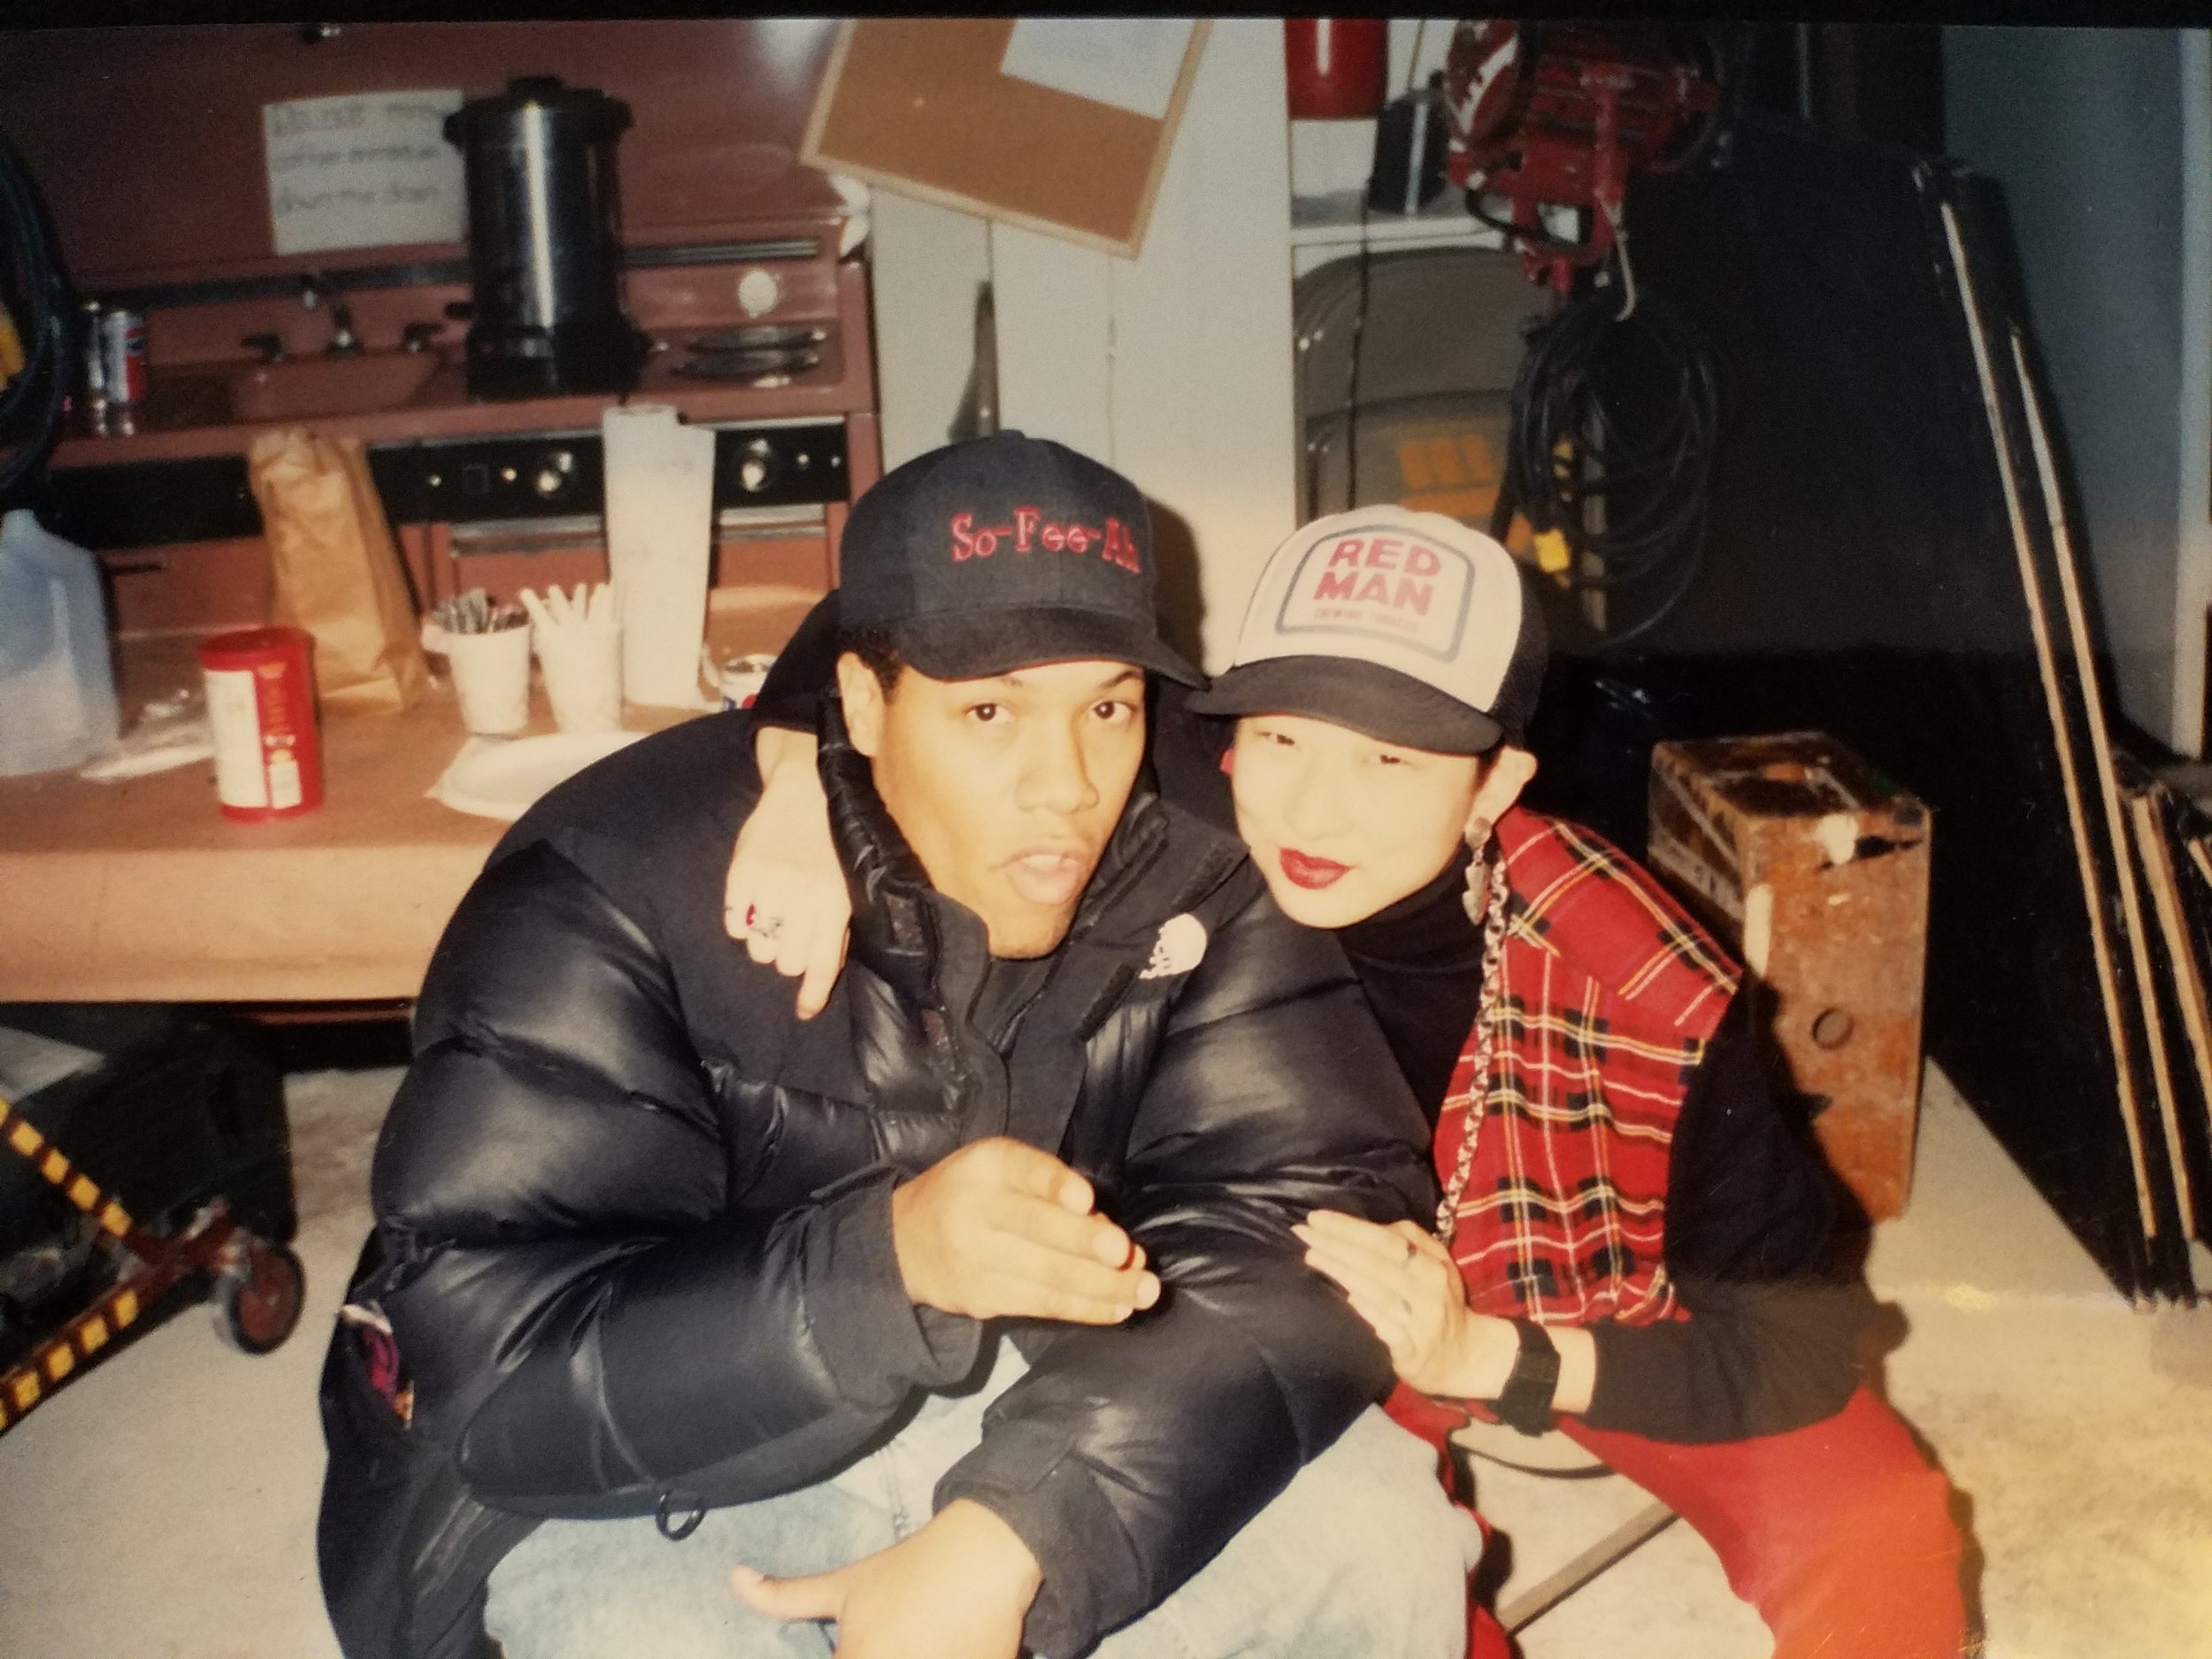 Redman and I in '91. Notice the hat swap.